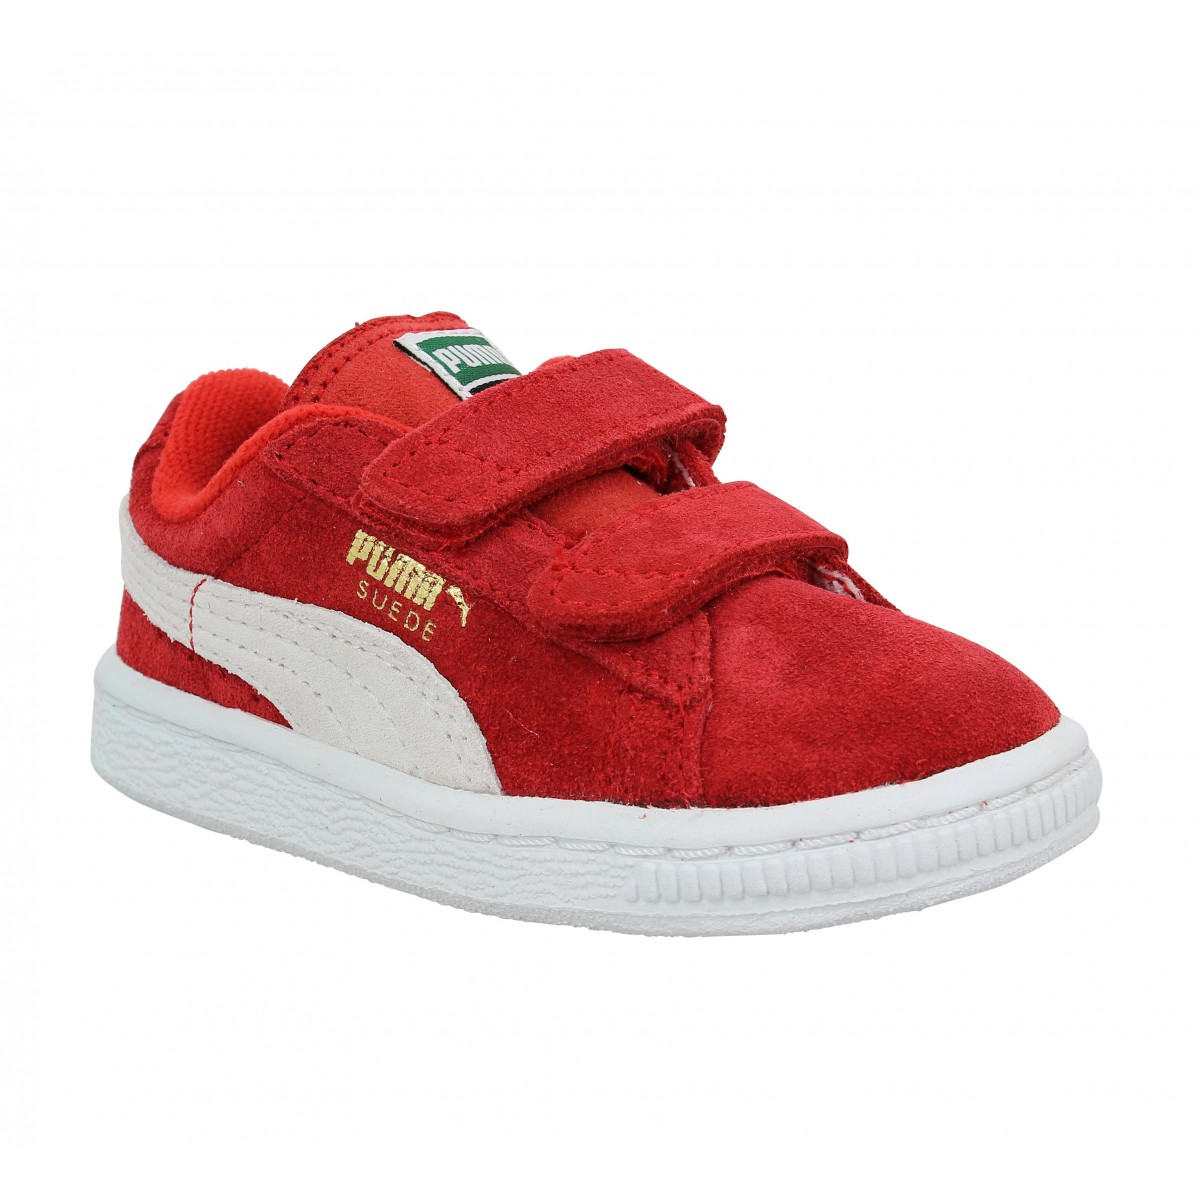 Baskets PUMA Suede 2 Straps Enfant Rouge